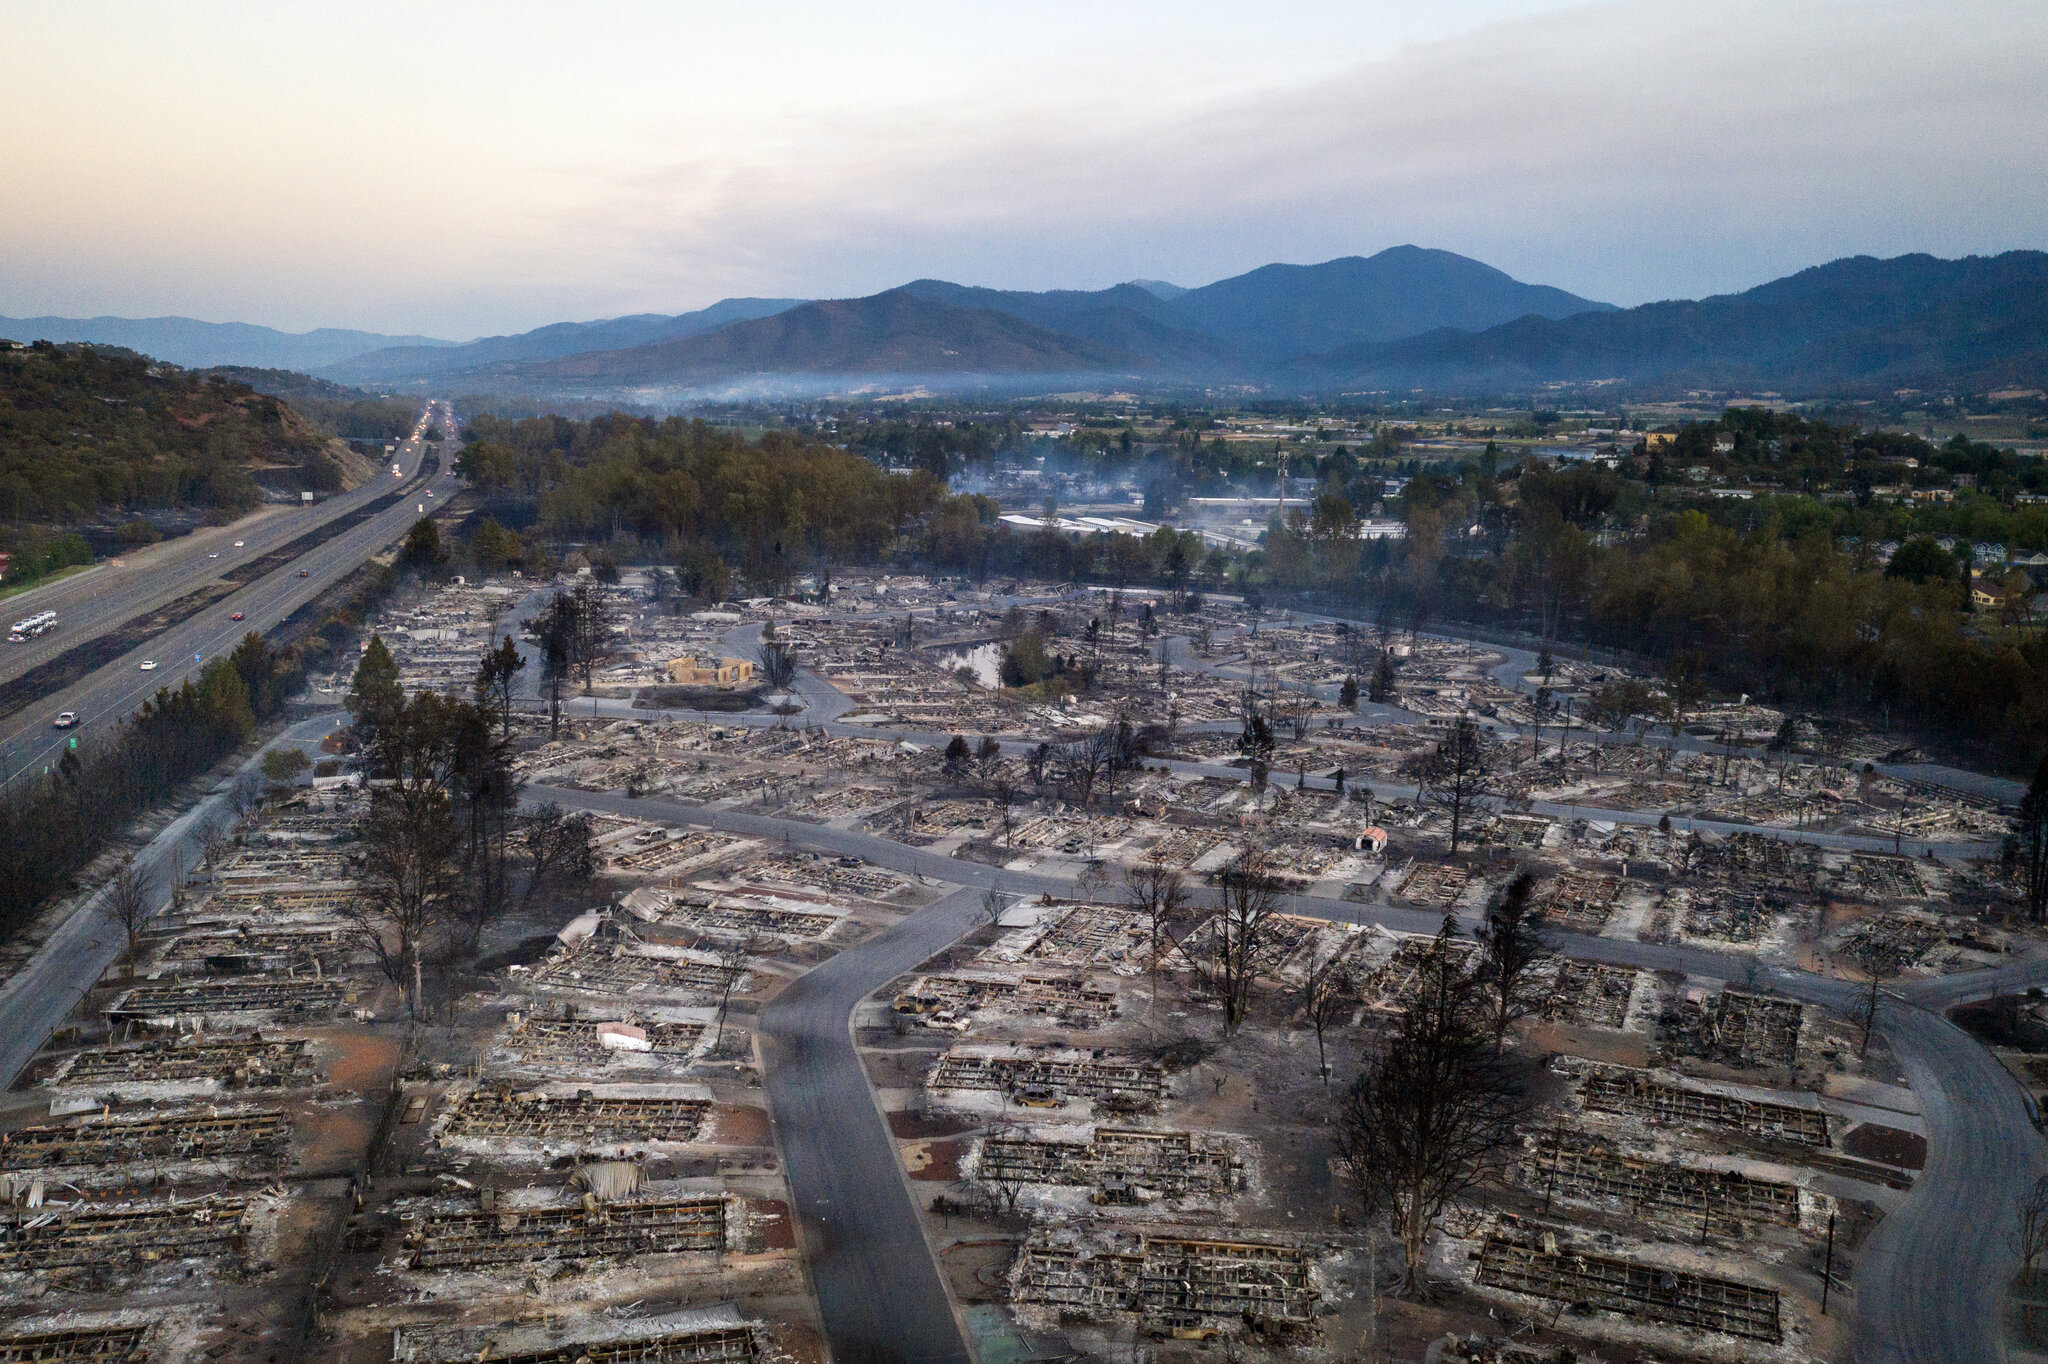 7 People Die In West Coast Wildfires The New York Times